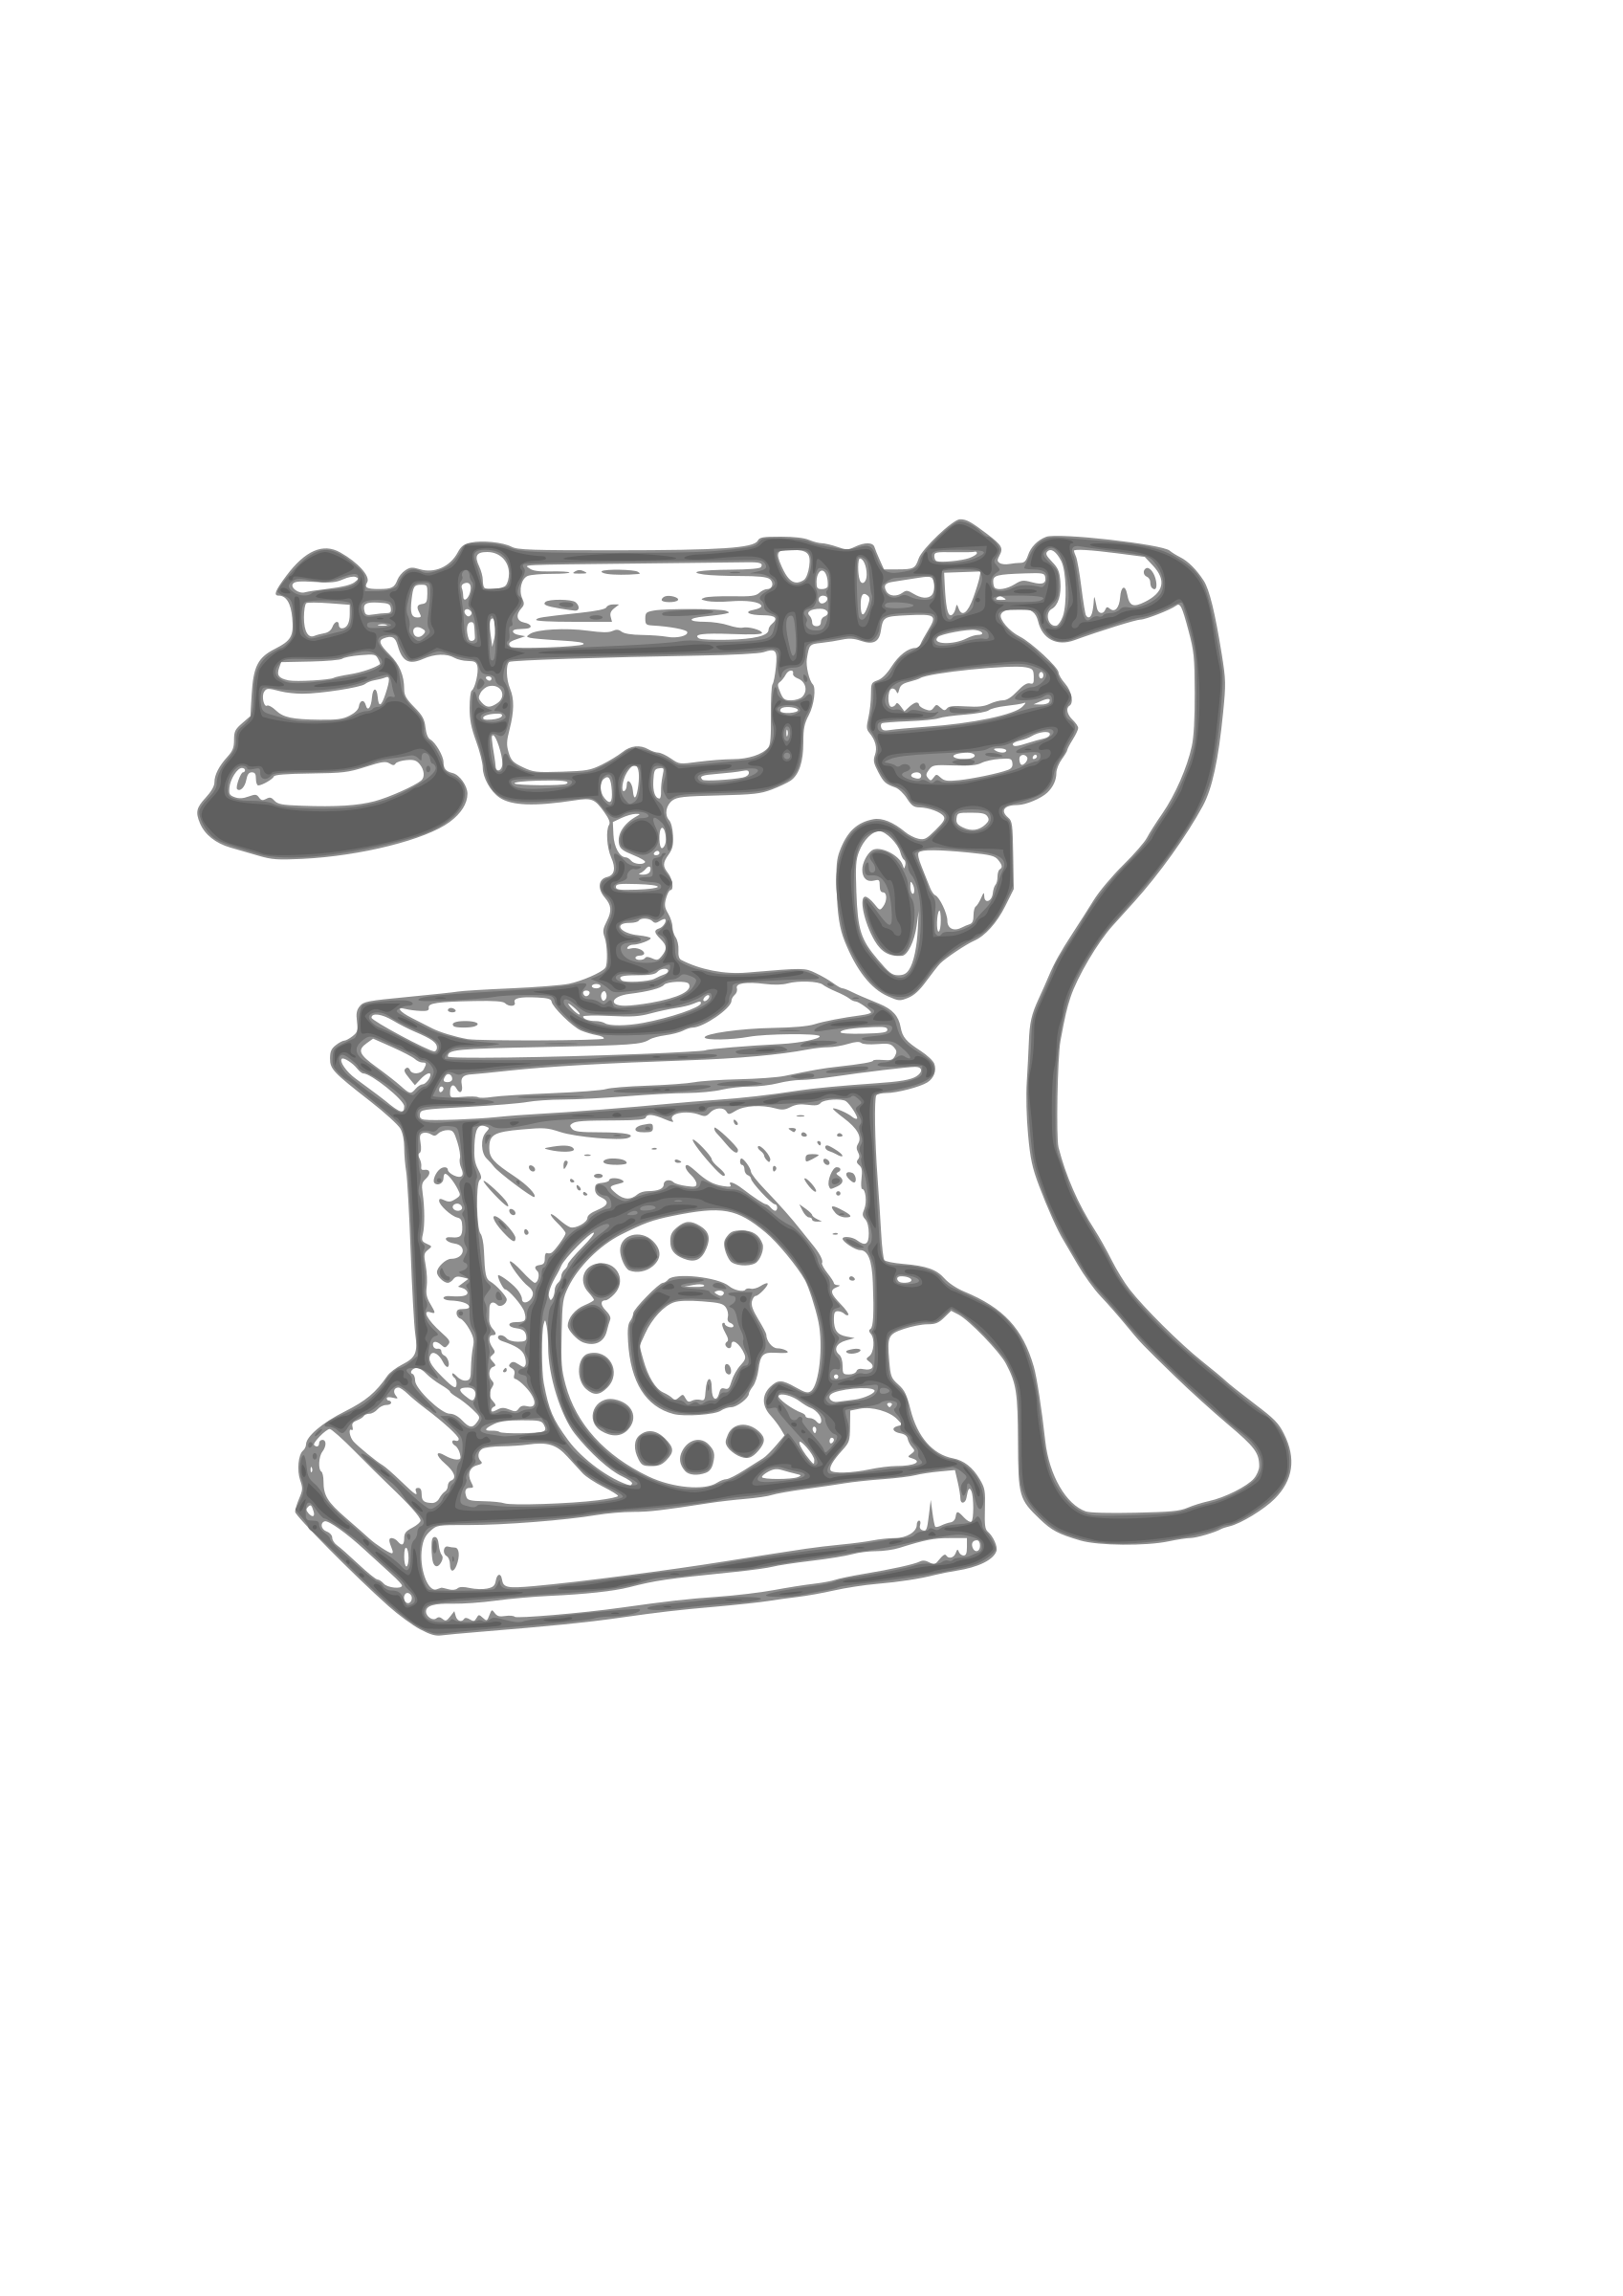 Telephone clipart old phone Phone old old Clipart phone